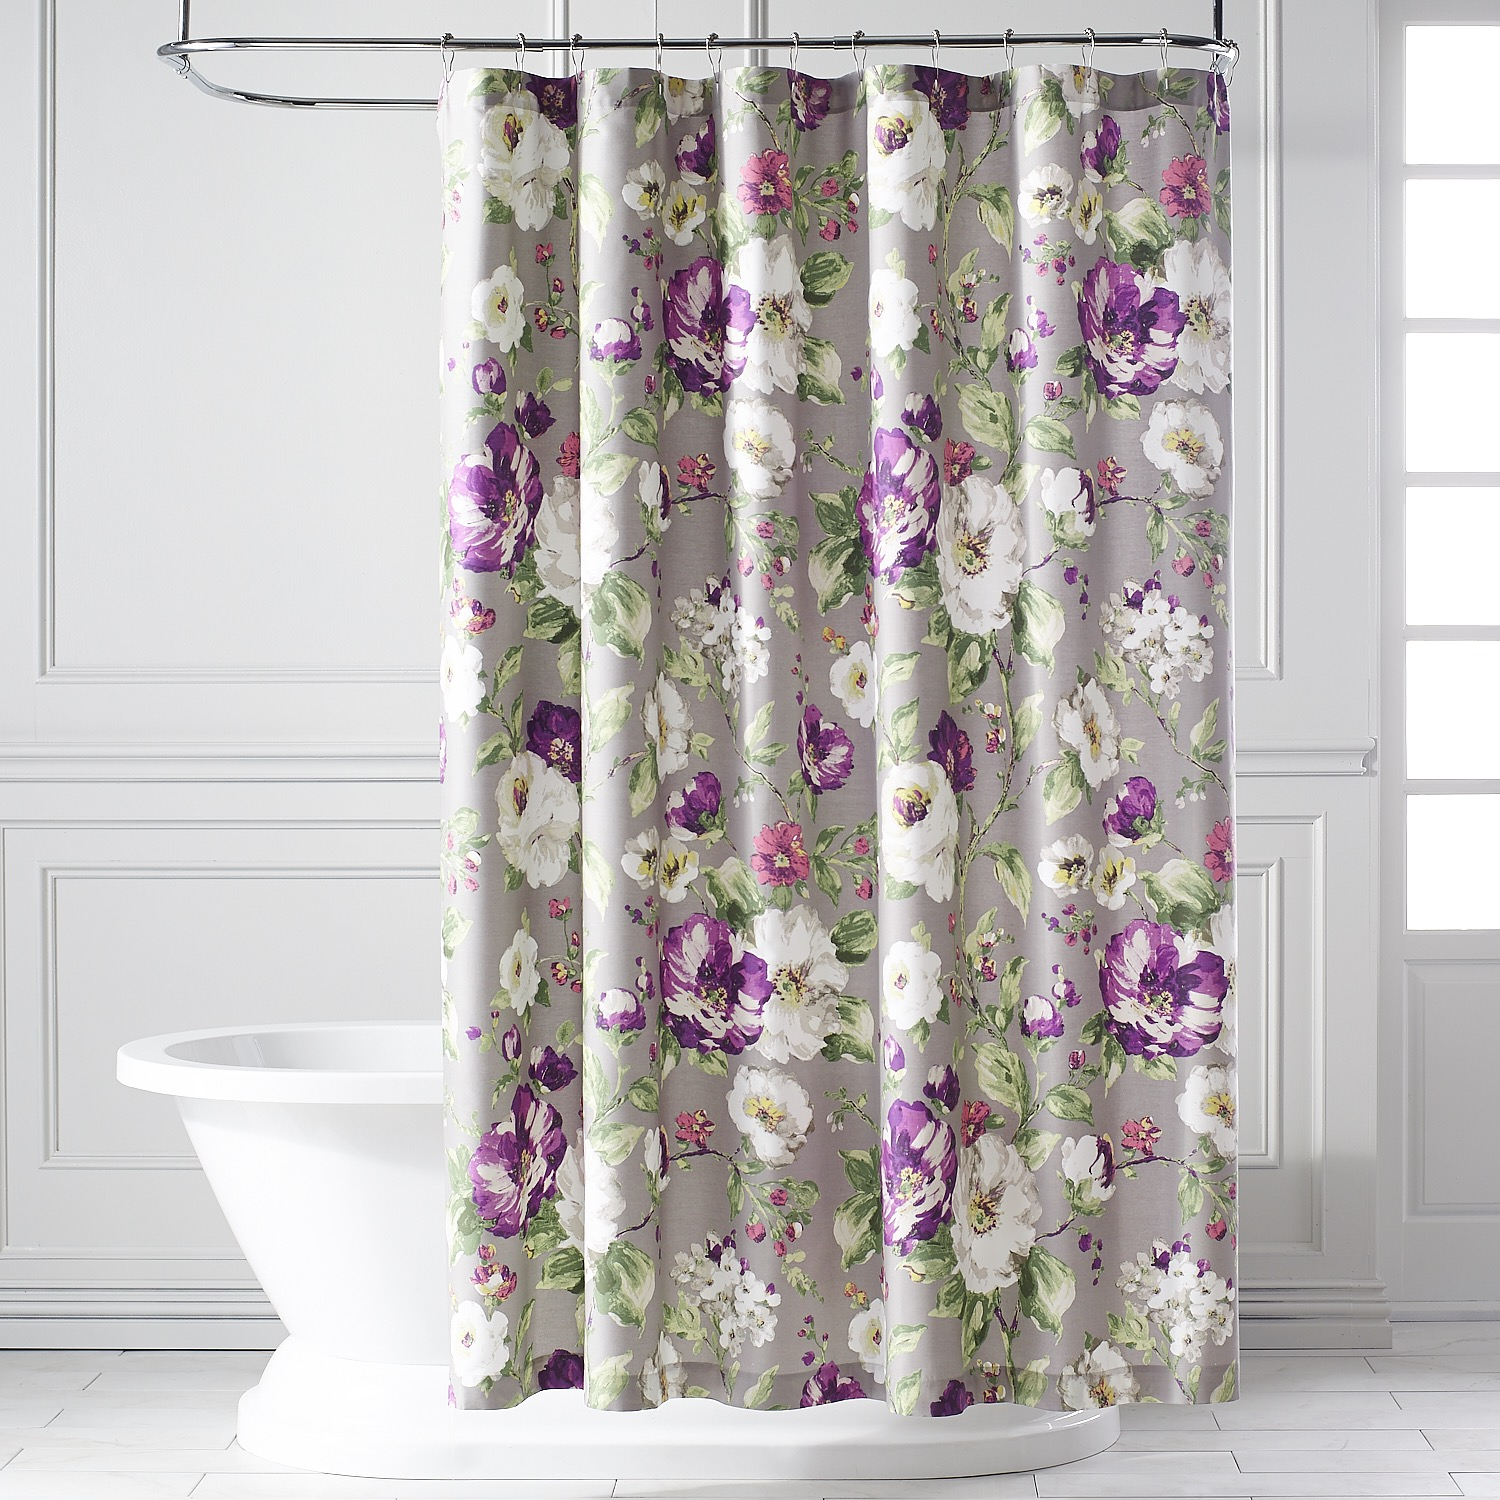 Misted Blooms Shower Curtain